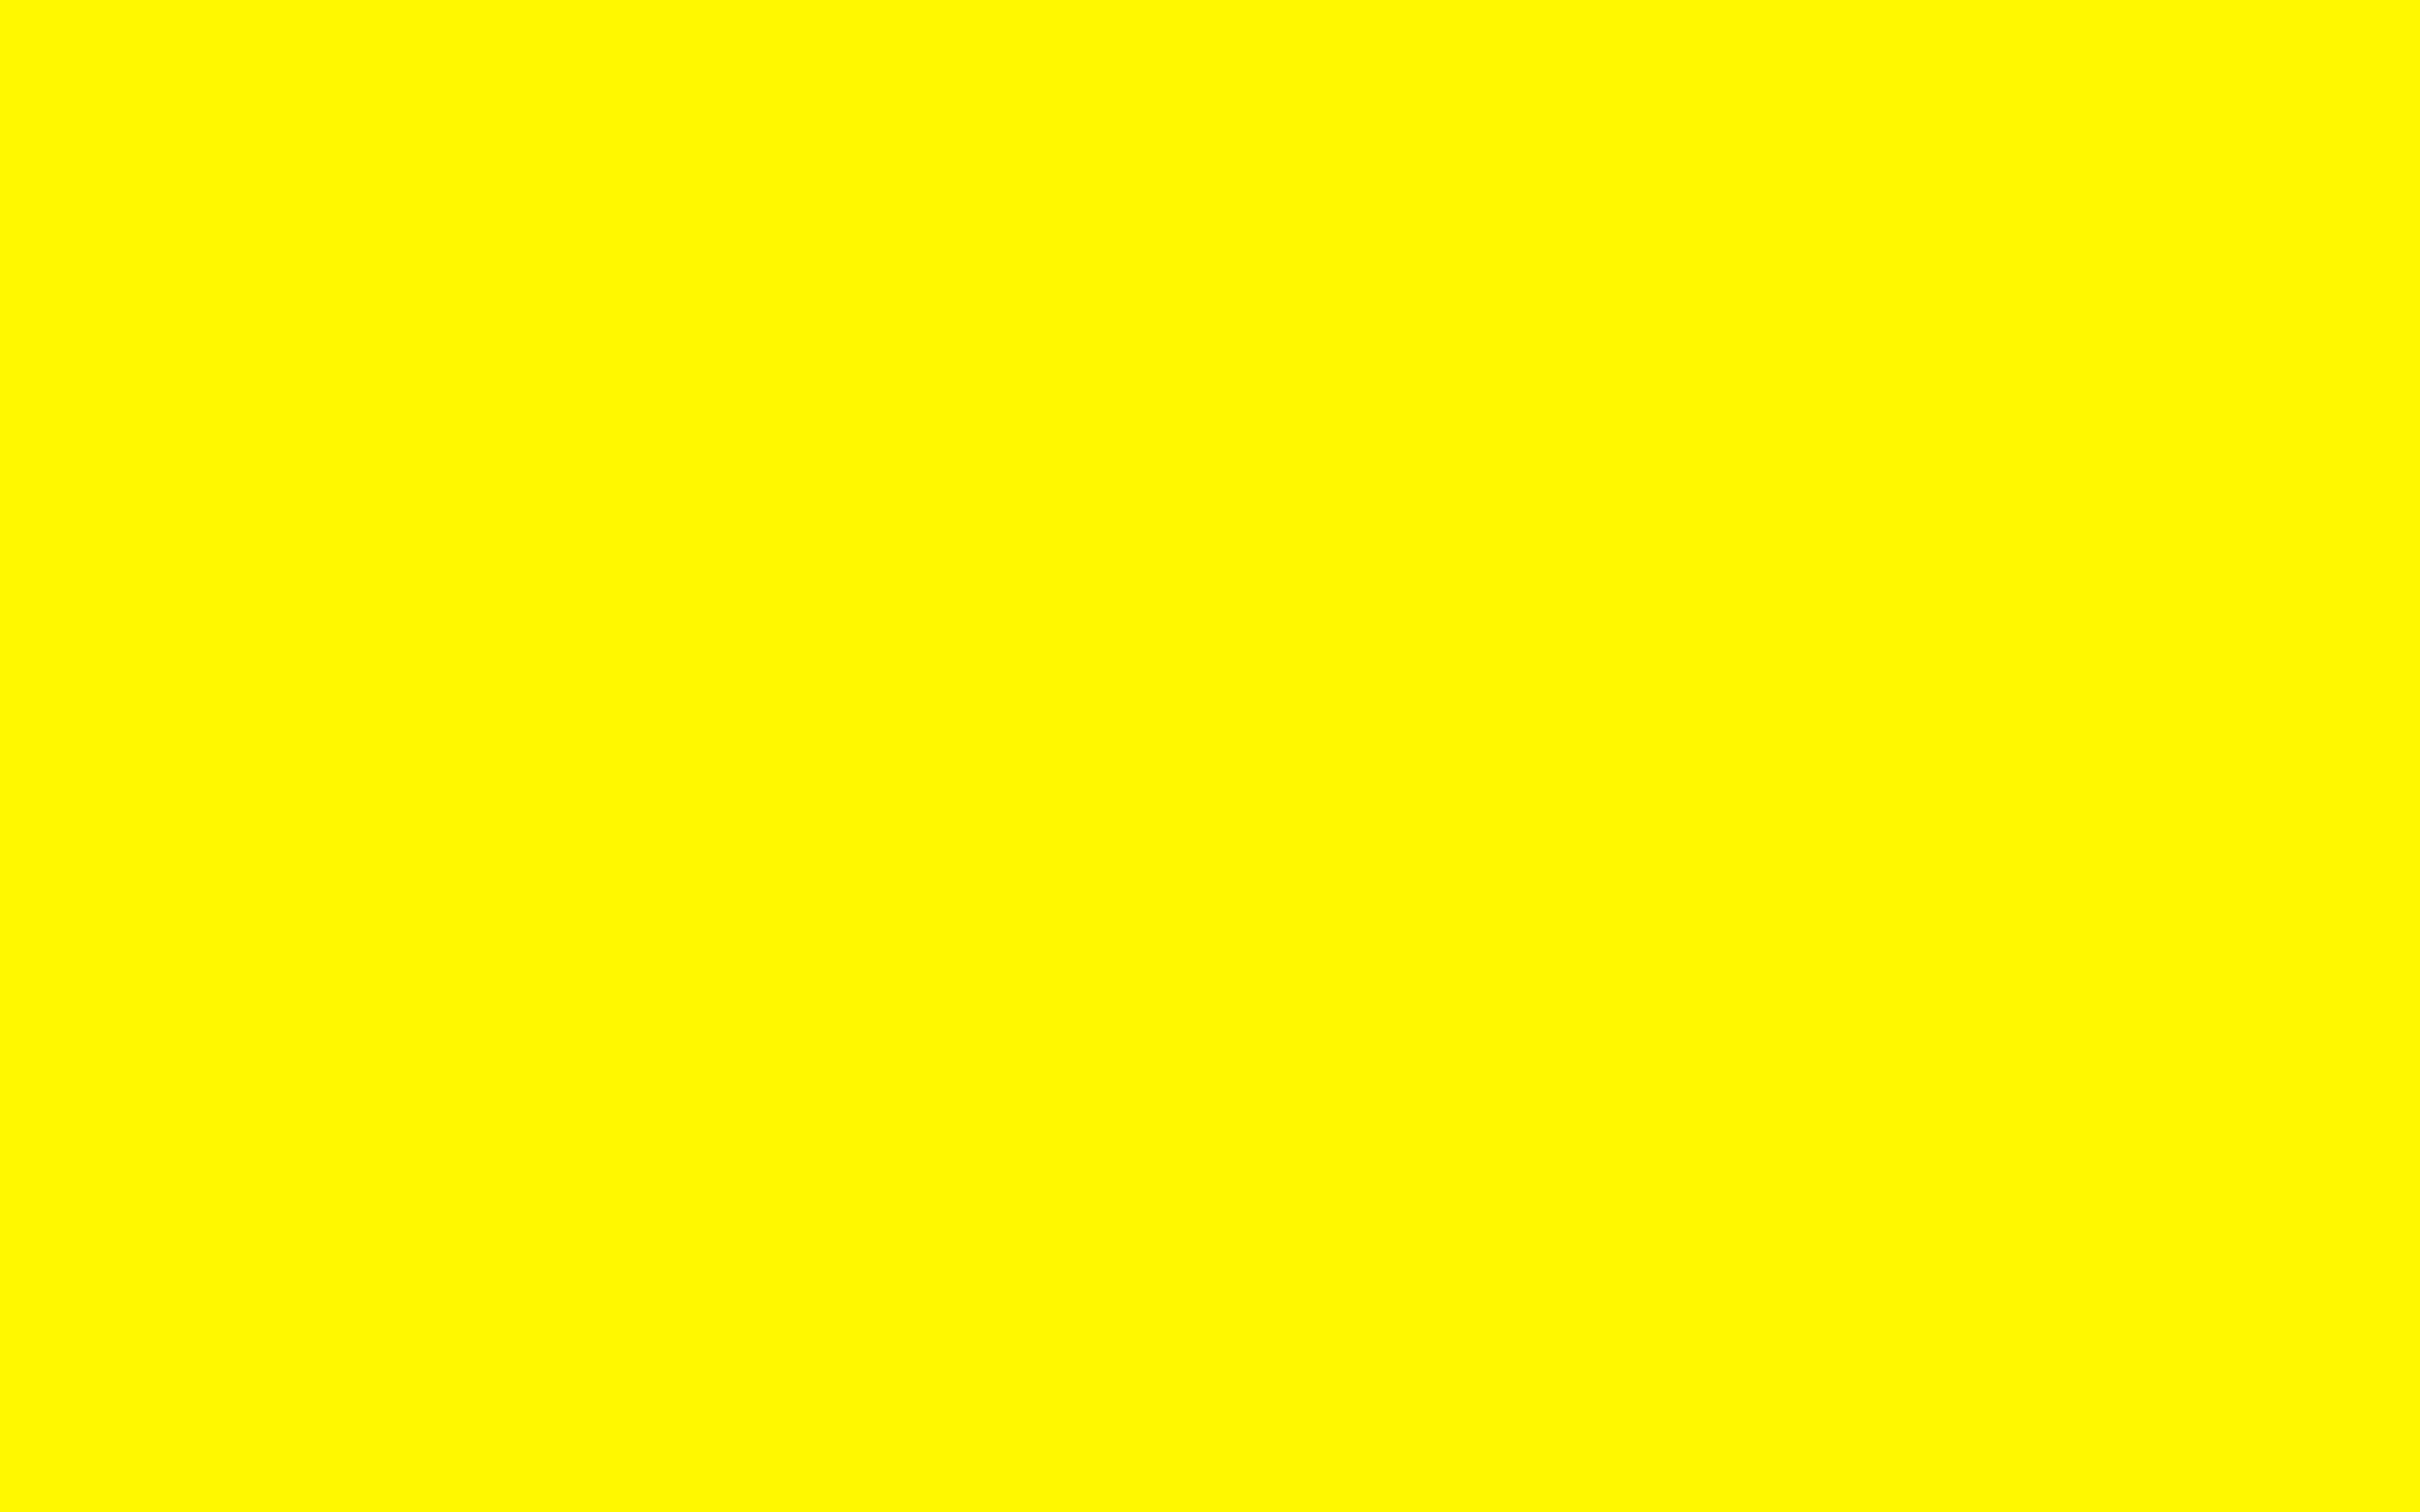 2560x1600 Cadmium Yellow Solid Color Background